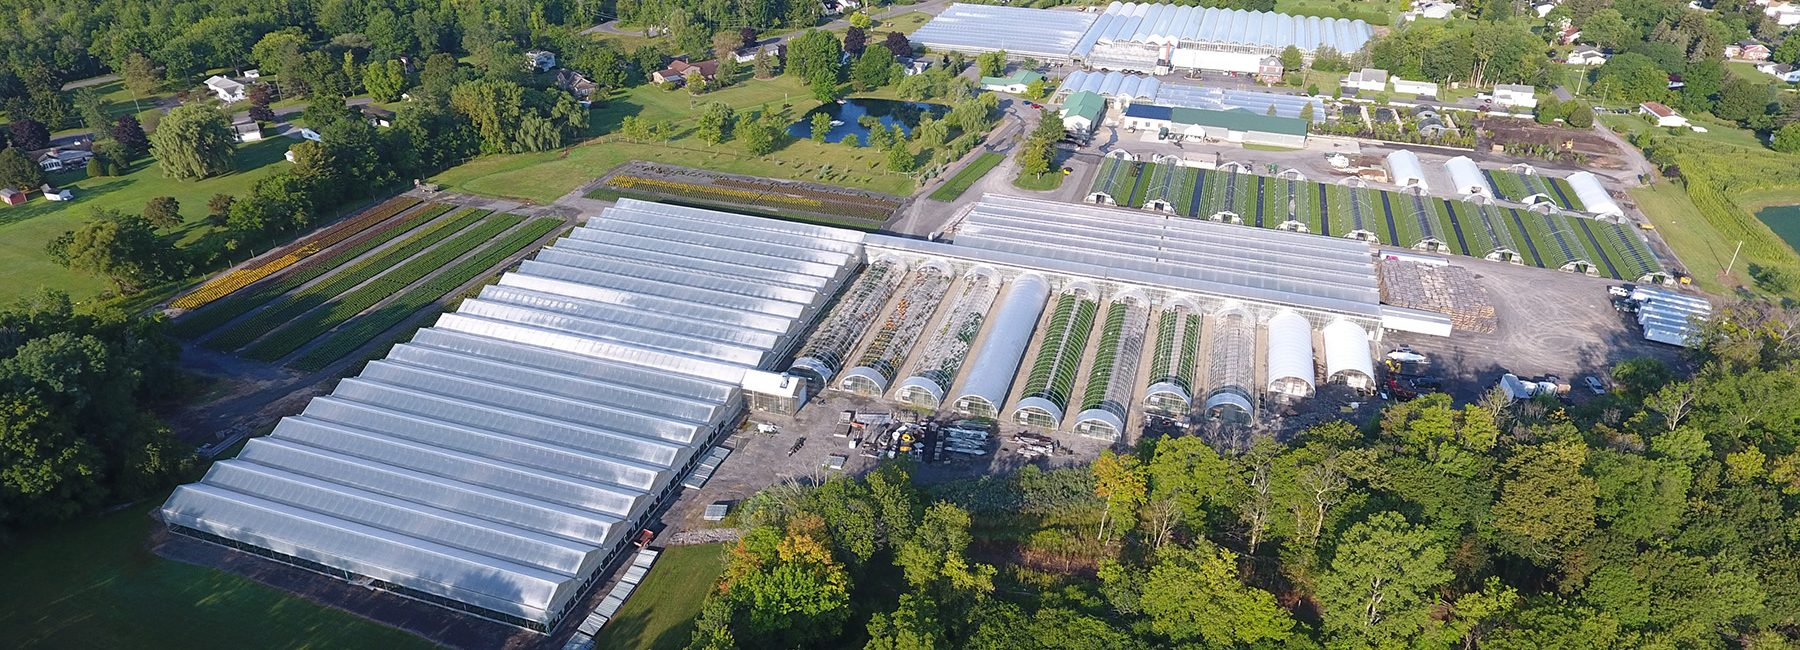 Dickmans Greenhouses Cayuga-county Economic Development Agency